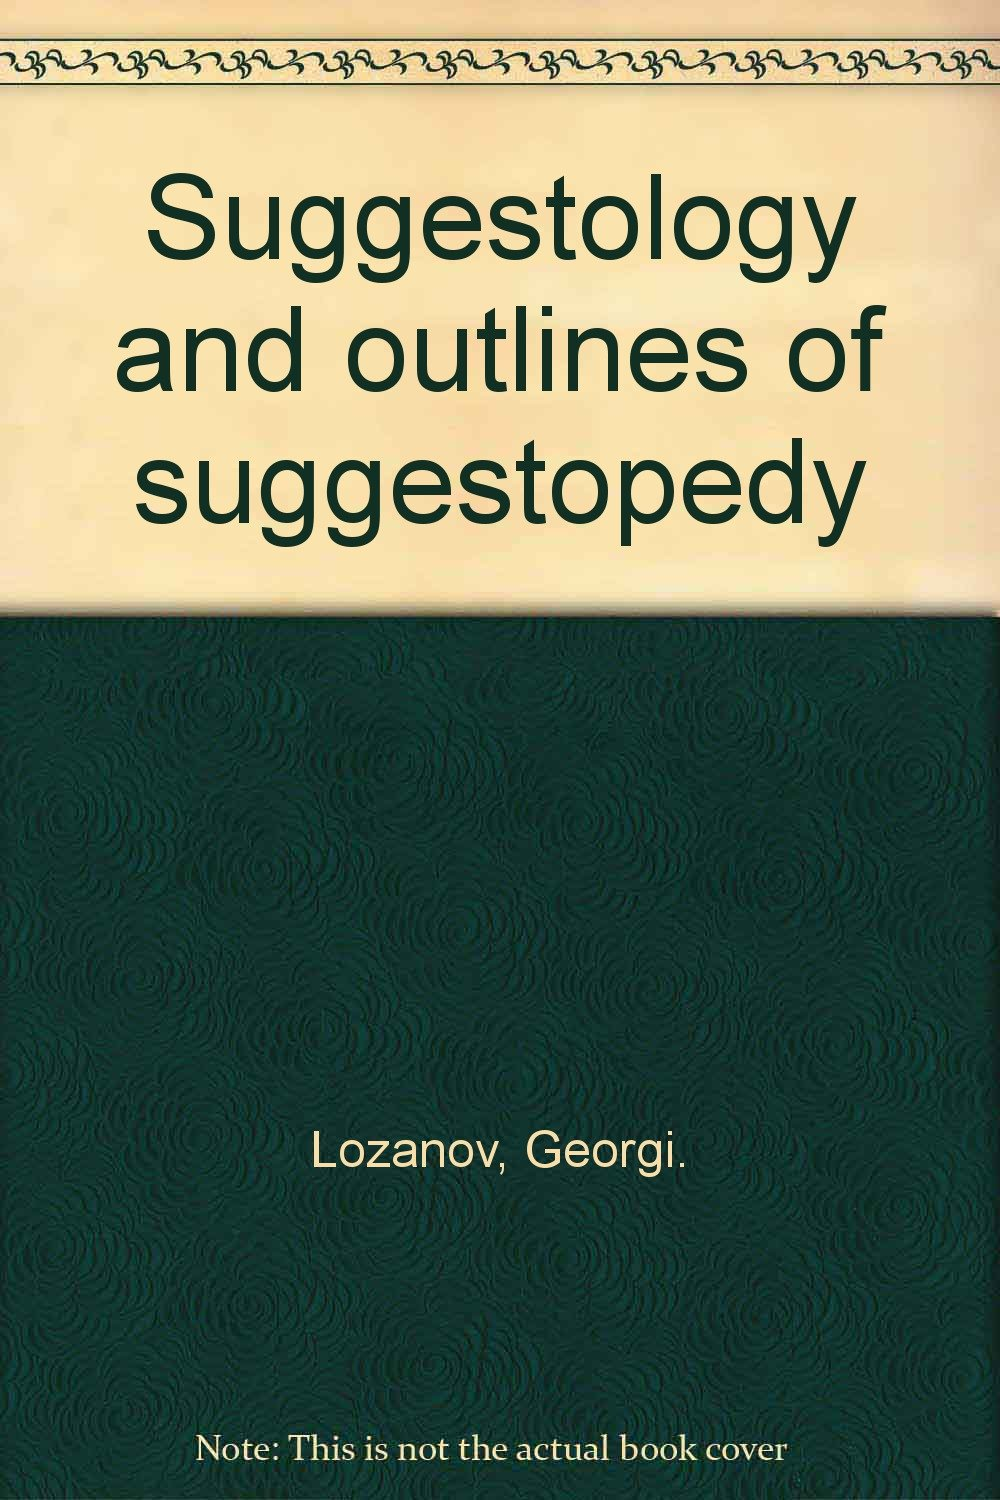 Suggestology and outlines of suggestopedy